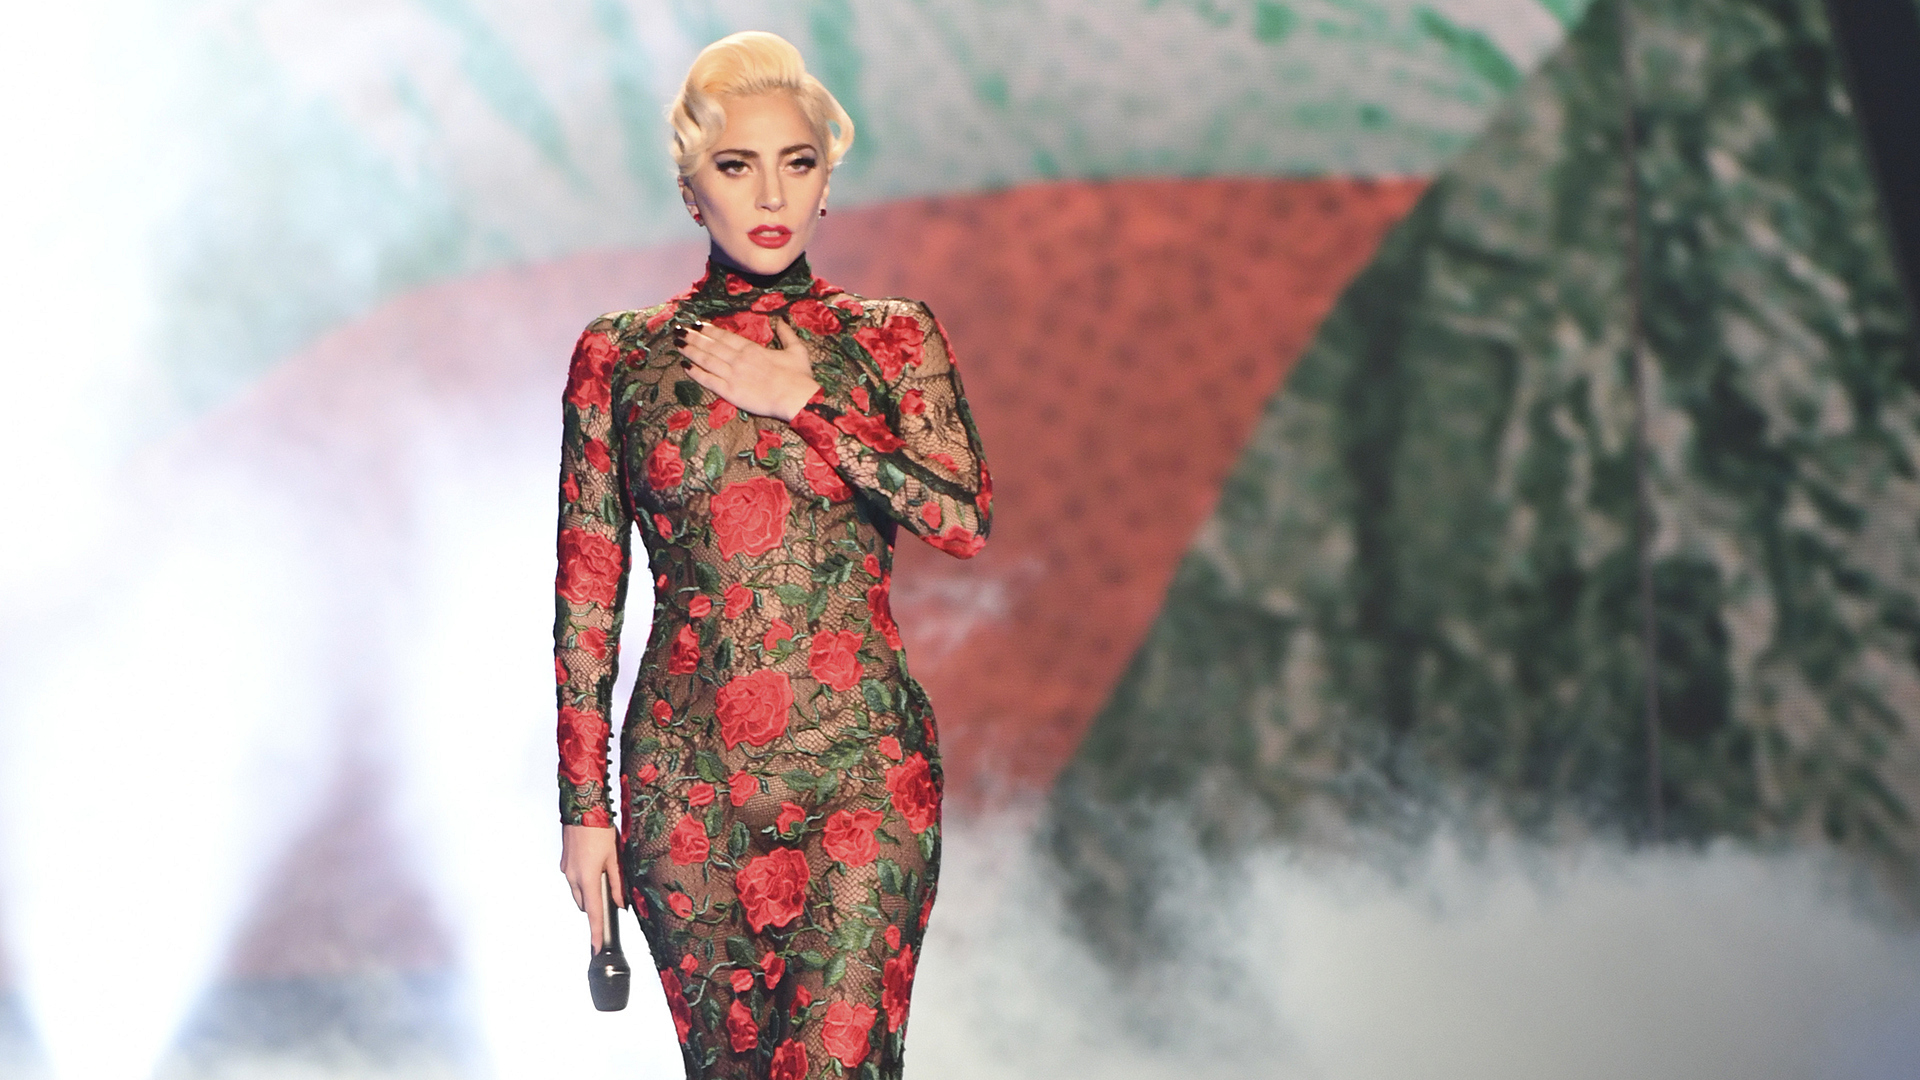 Lady Gaga takes to the stage.